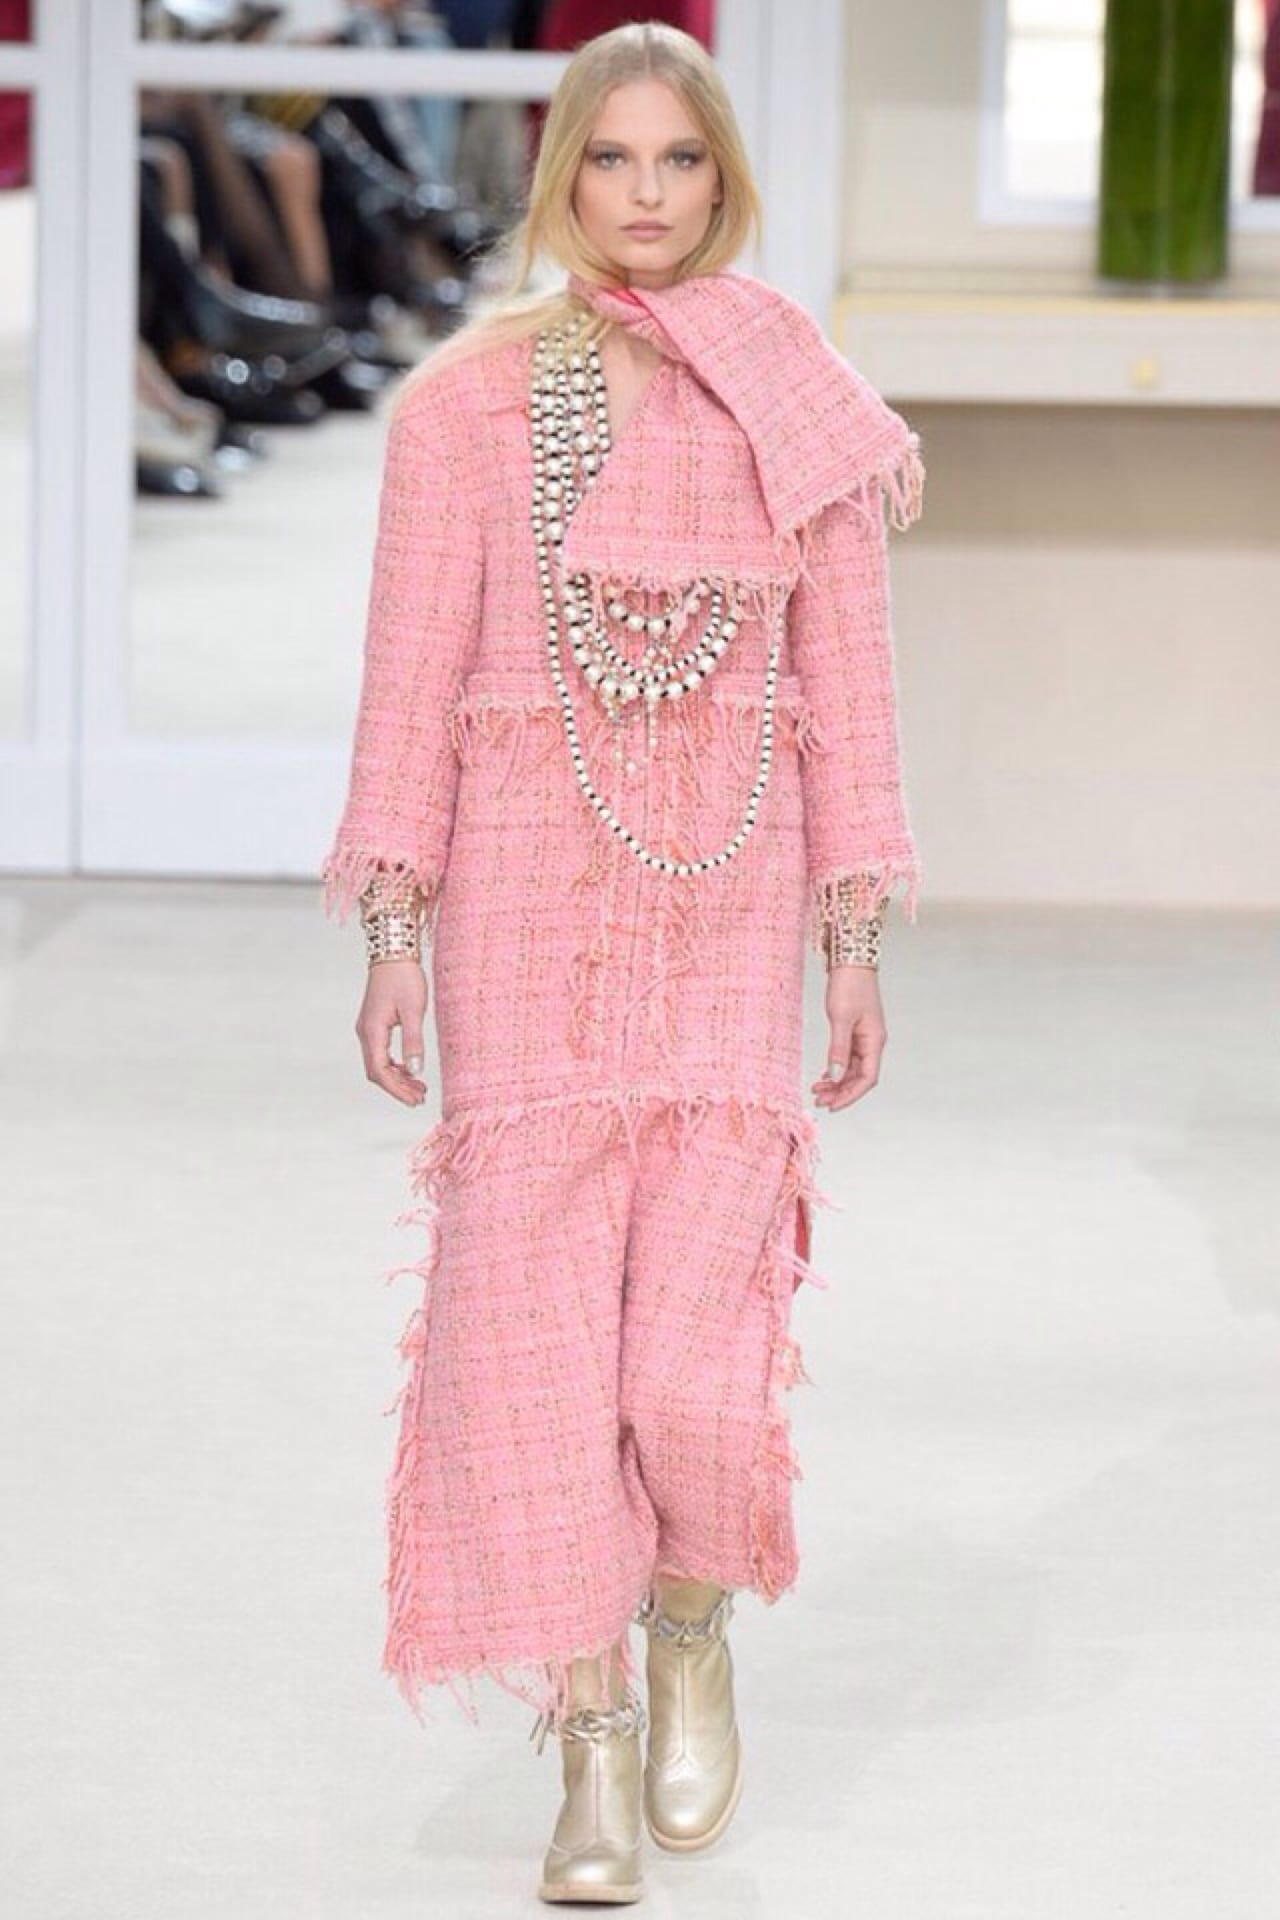 chanel fall 2016, chanel sfilata 2016, Chanel, Fashion Show, Ready To Wear Collection Fall Winter 2016, in Paris, theladycracy.it, elisa bellino, fashion blog, fashion blogger italiane, fashion blog italia, tendenze moda 2016, tendenze autunno inverno 2016